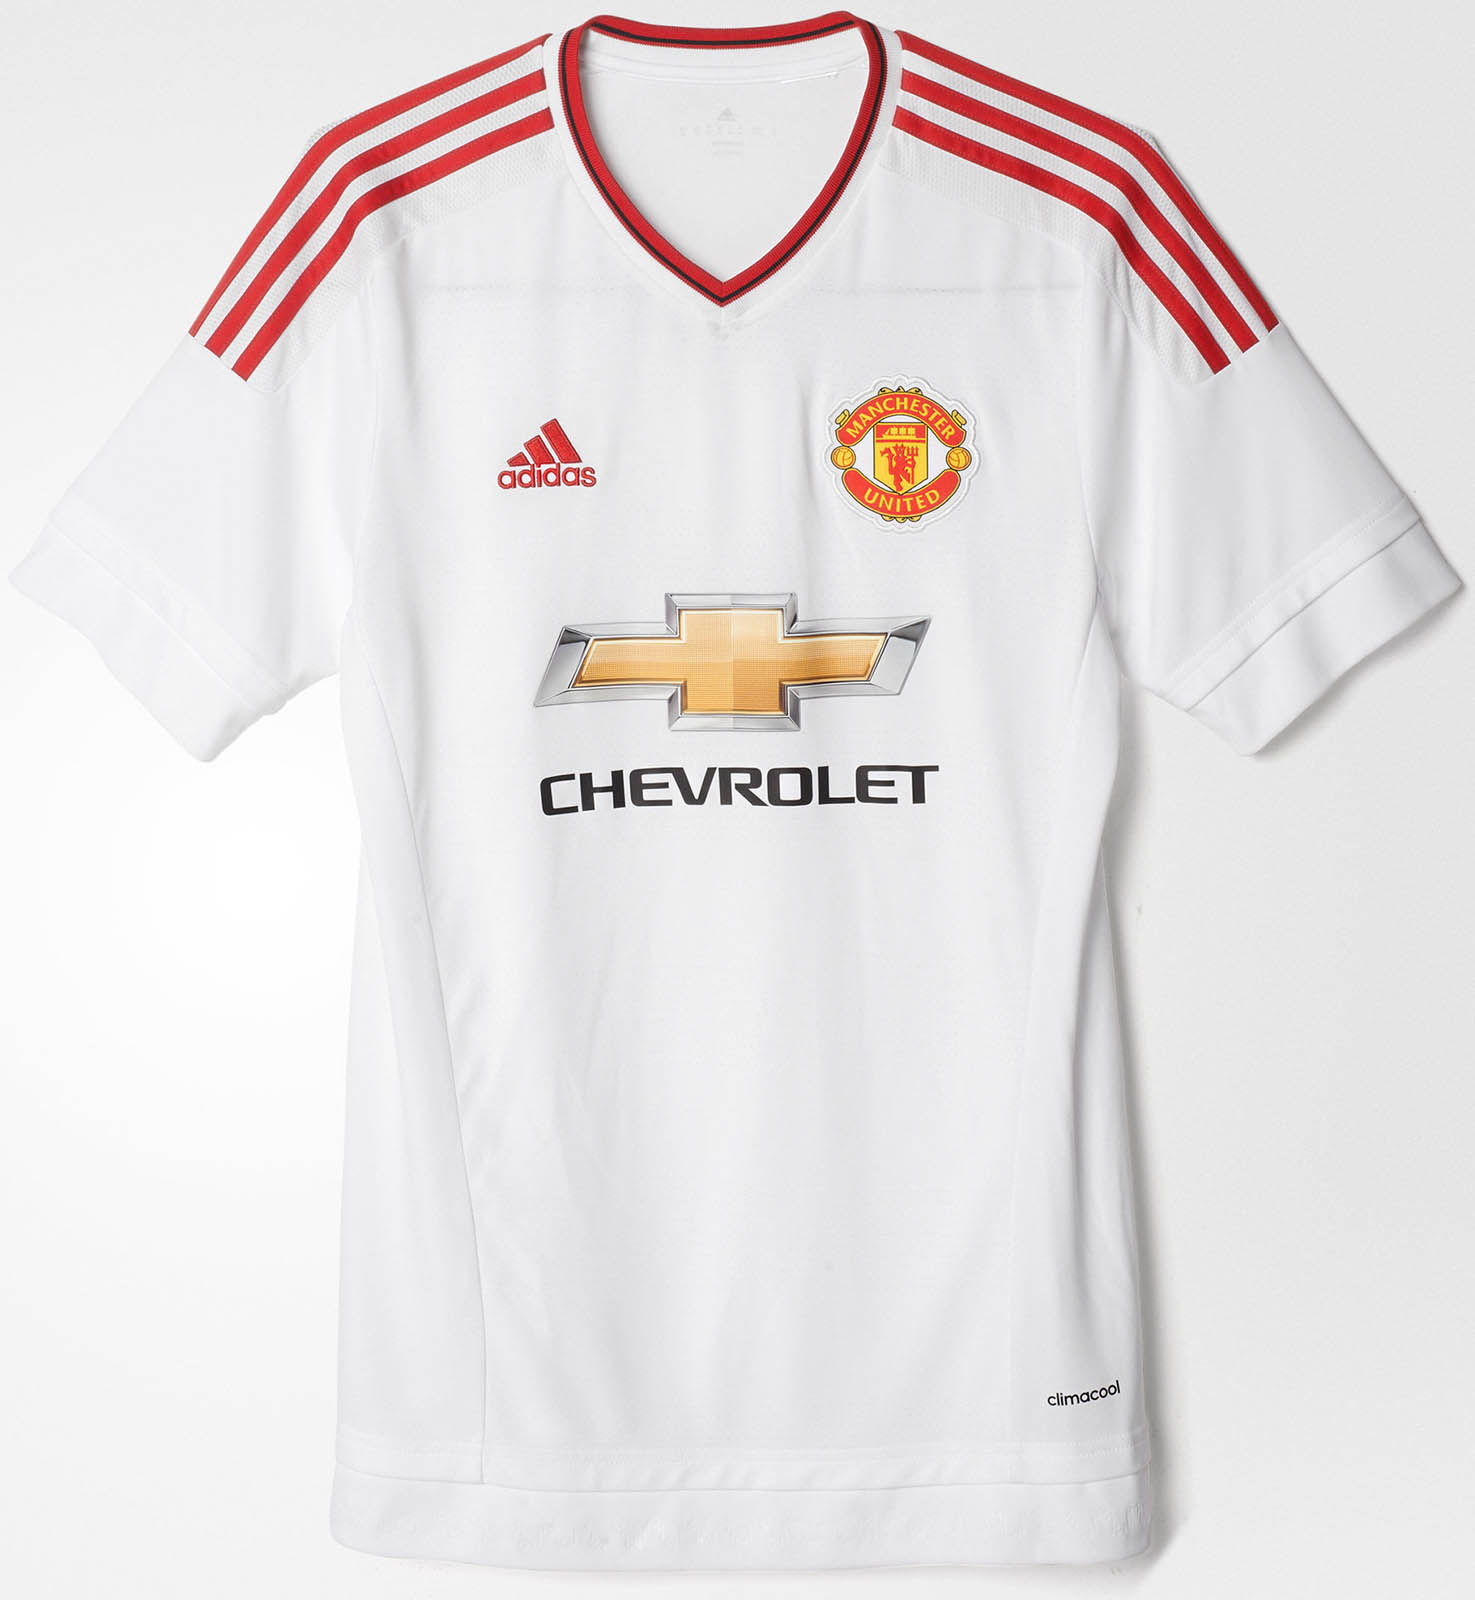 86aaf865d76 New Manchester United Home Shirt 2014 15 - DREAMWORKS